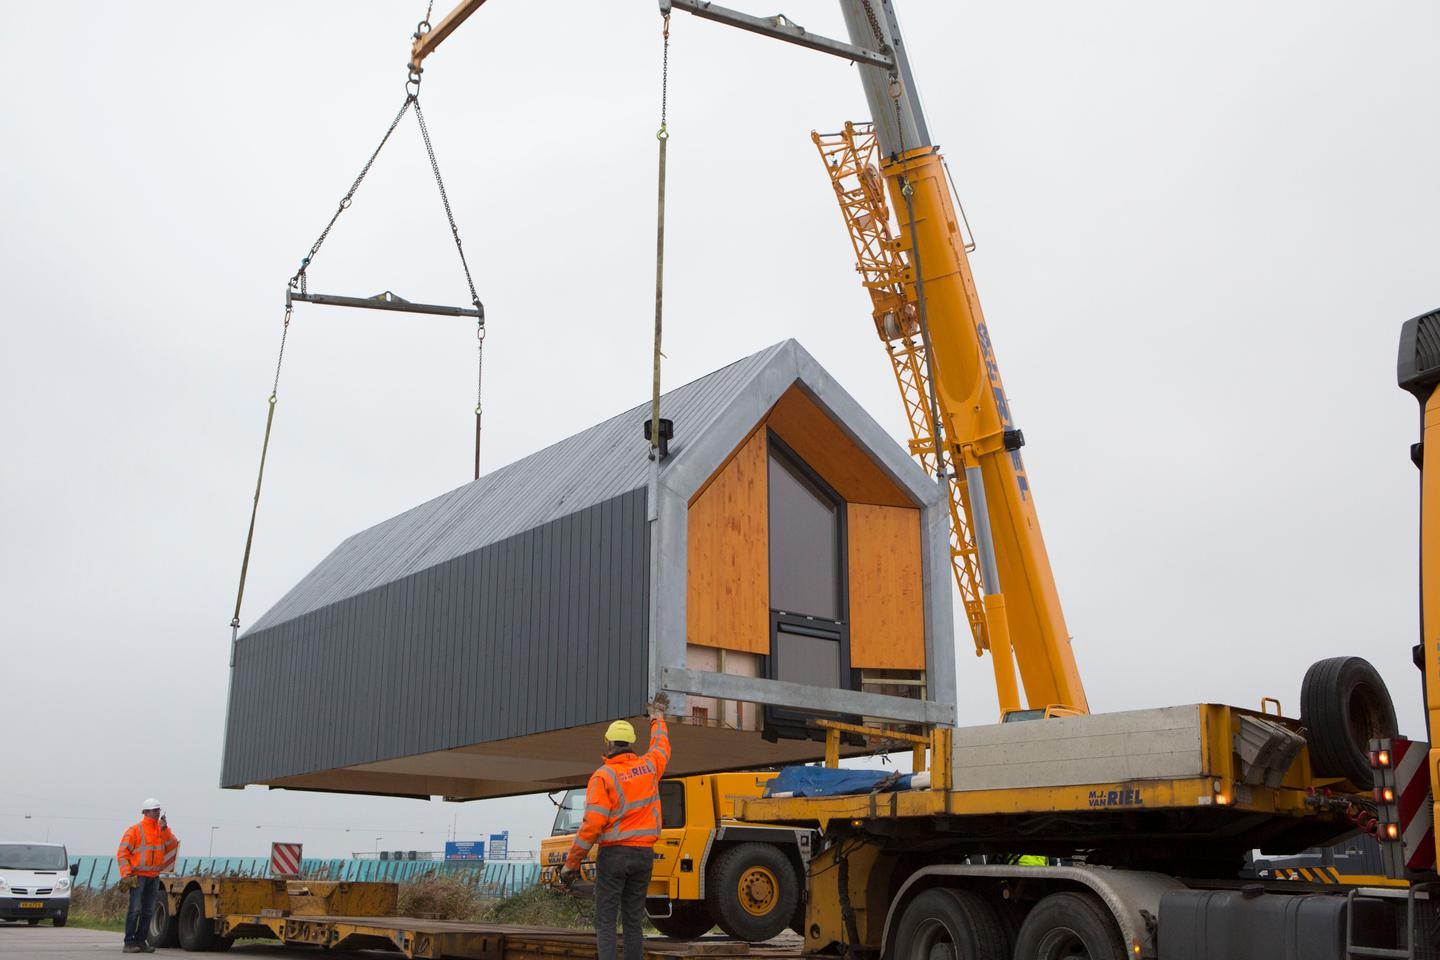 The Heijmans ONE is transported by truck and placed into position by crane